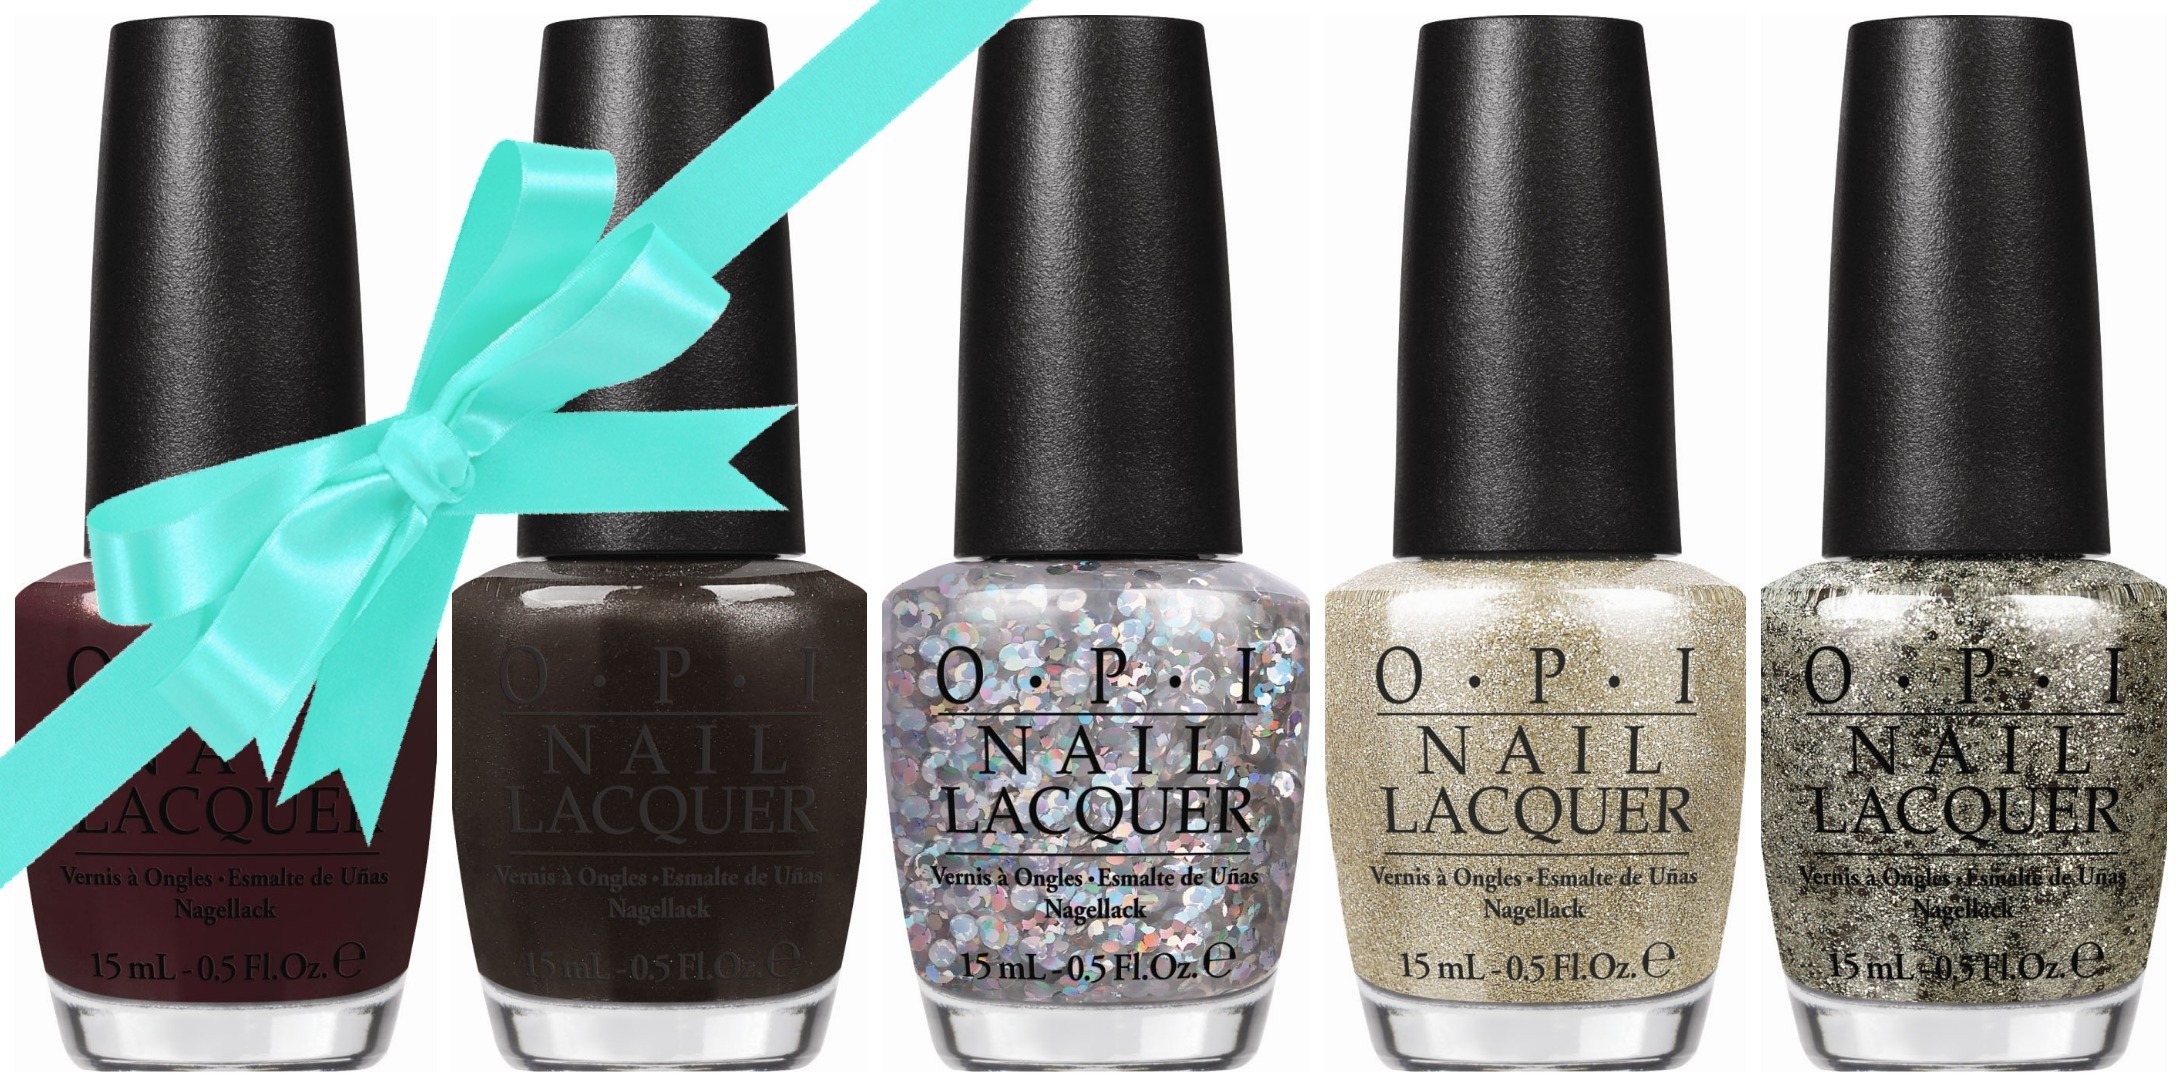 Opi Mariah Carey holiday collection